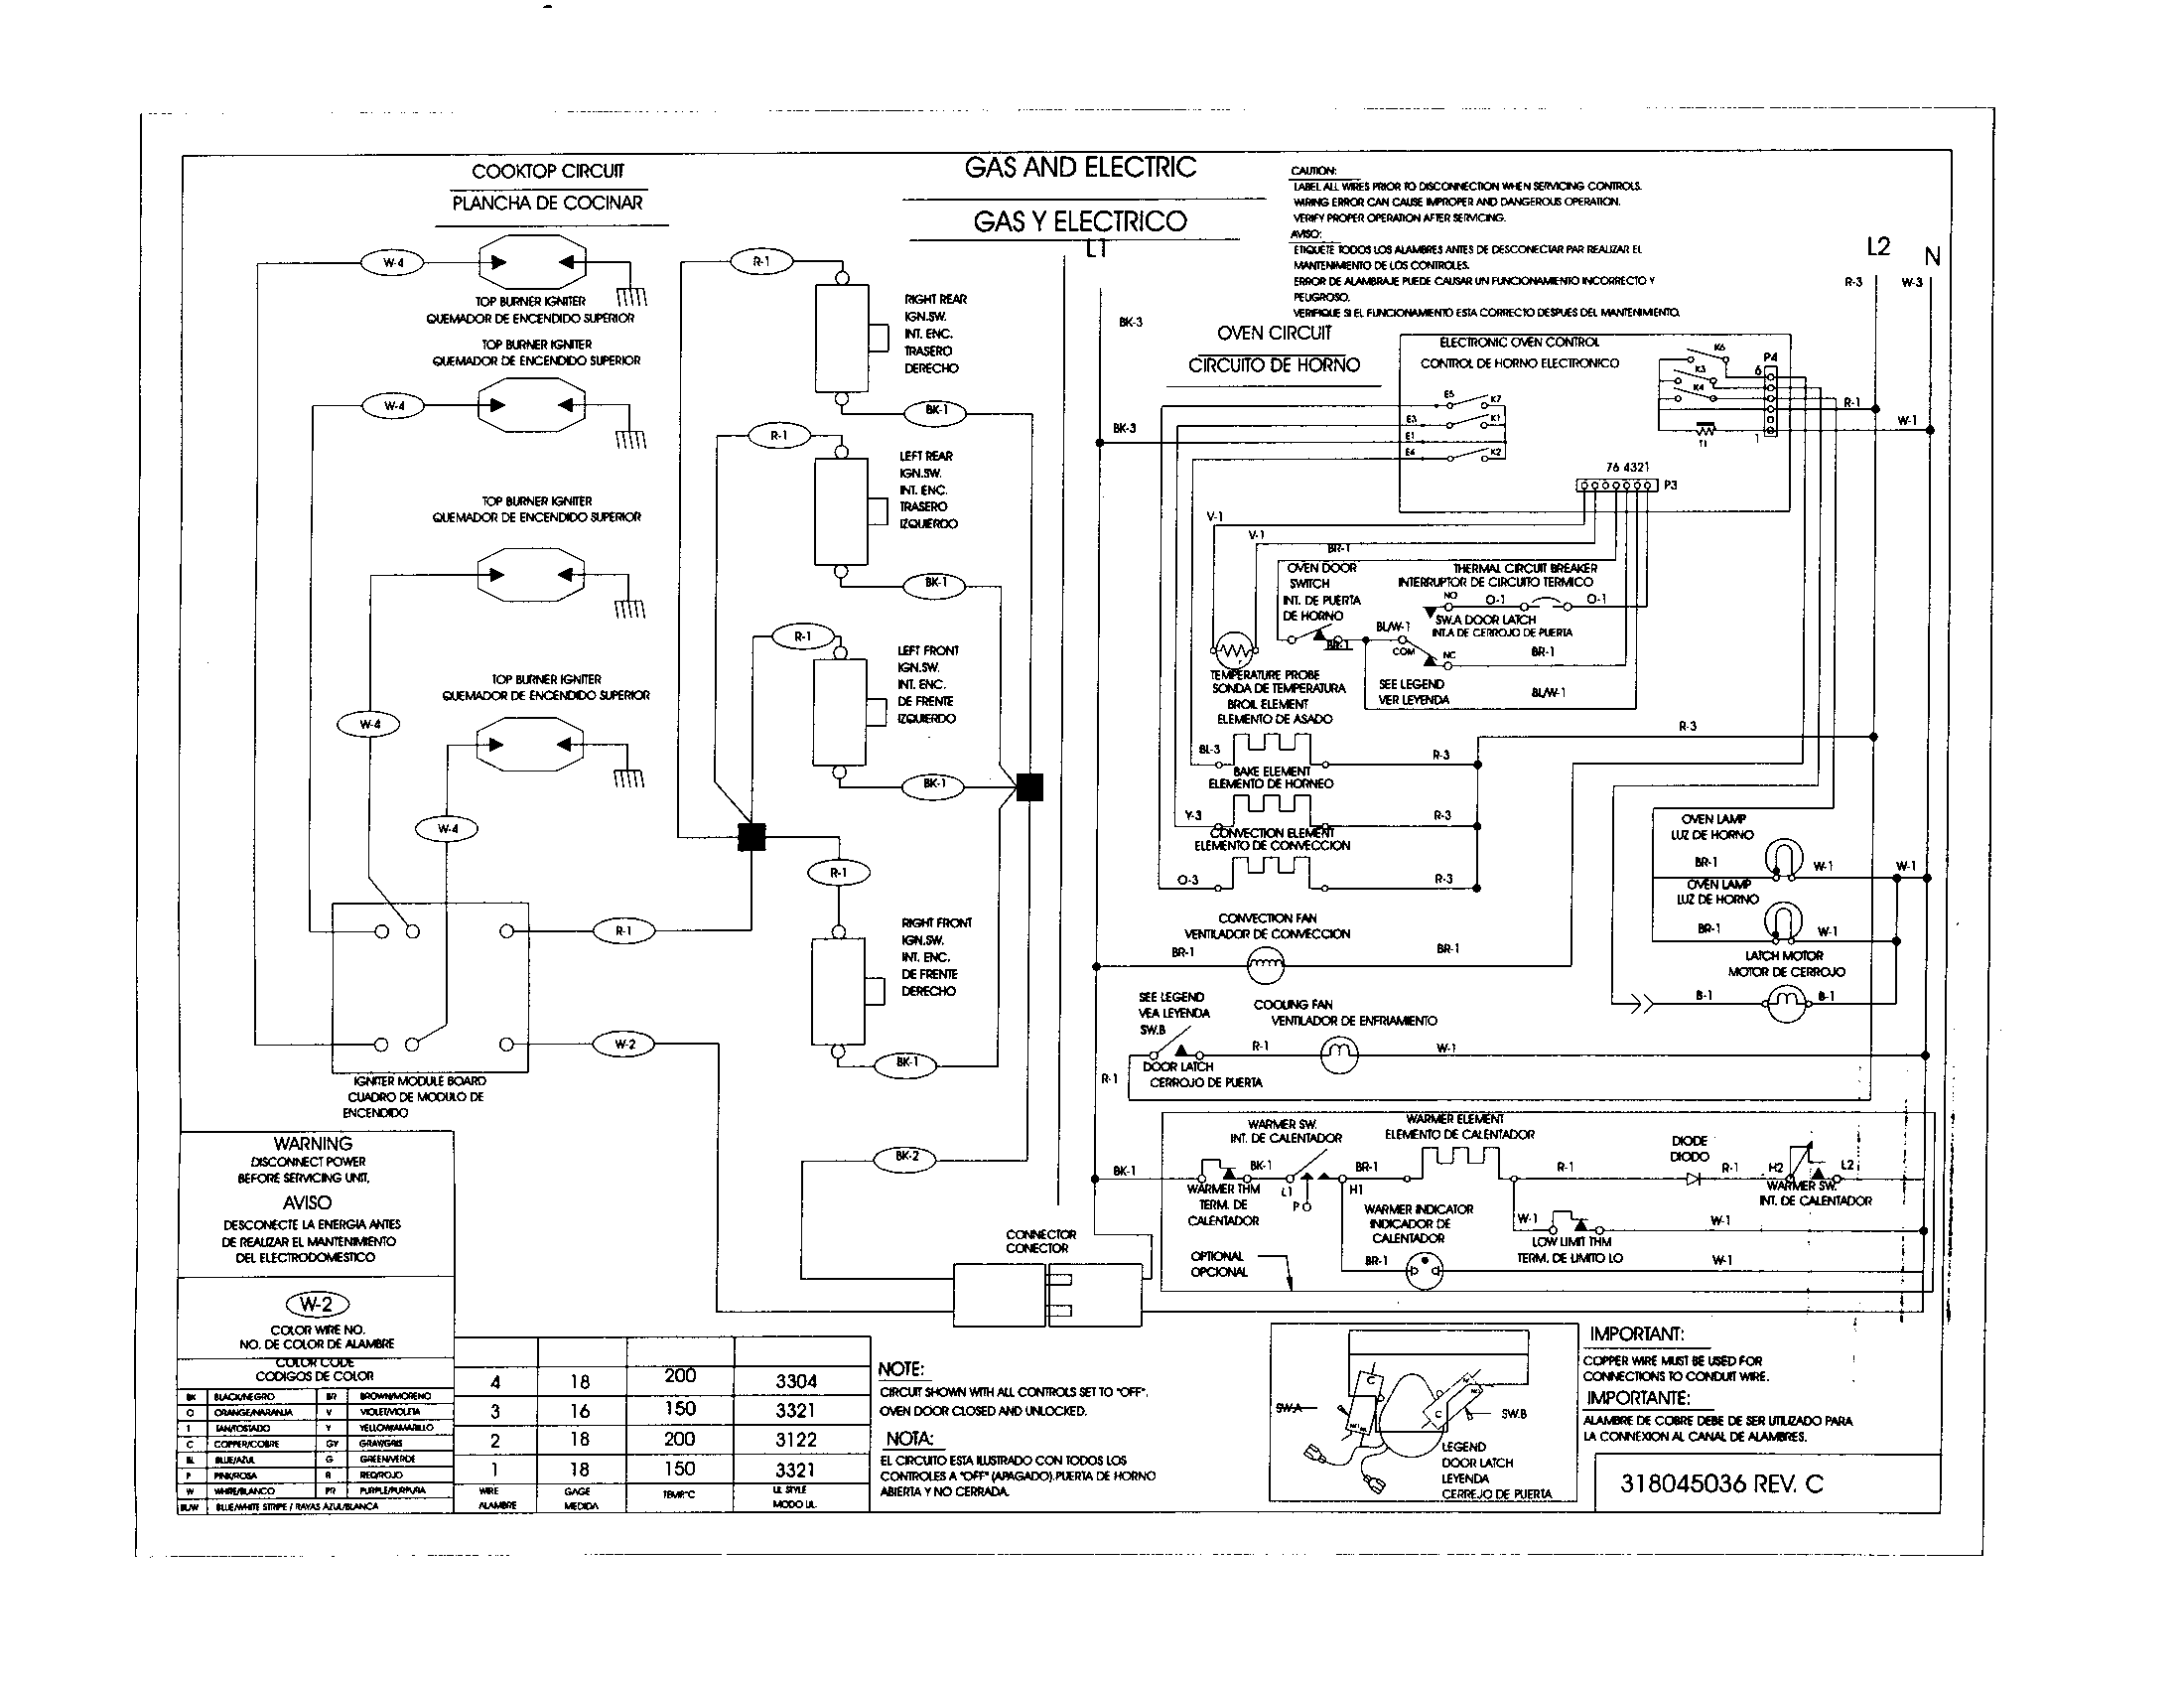 whirlpool dishwasher wiring diagram with Index on Index also Maytag Quiet Series 300 Parts Diagram further Maytag Oven Model Numbers 577 Wiring Diagrams furthermore Ge Refrigerator Electrical Wiring Diagram Wiring Diagrams additionally Index.